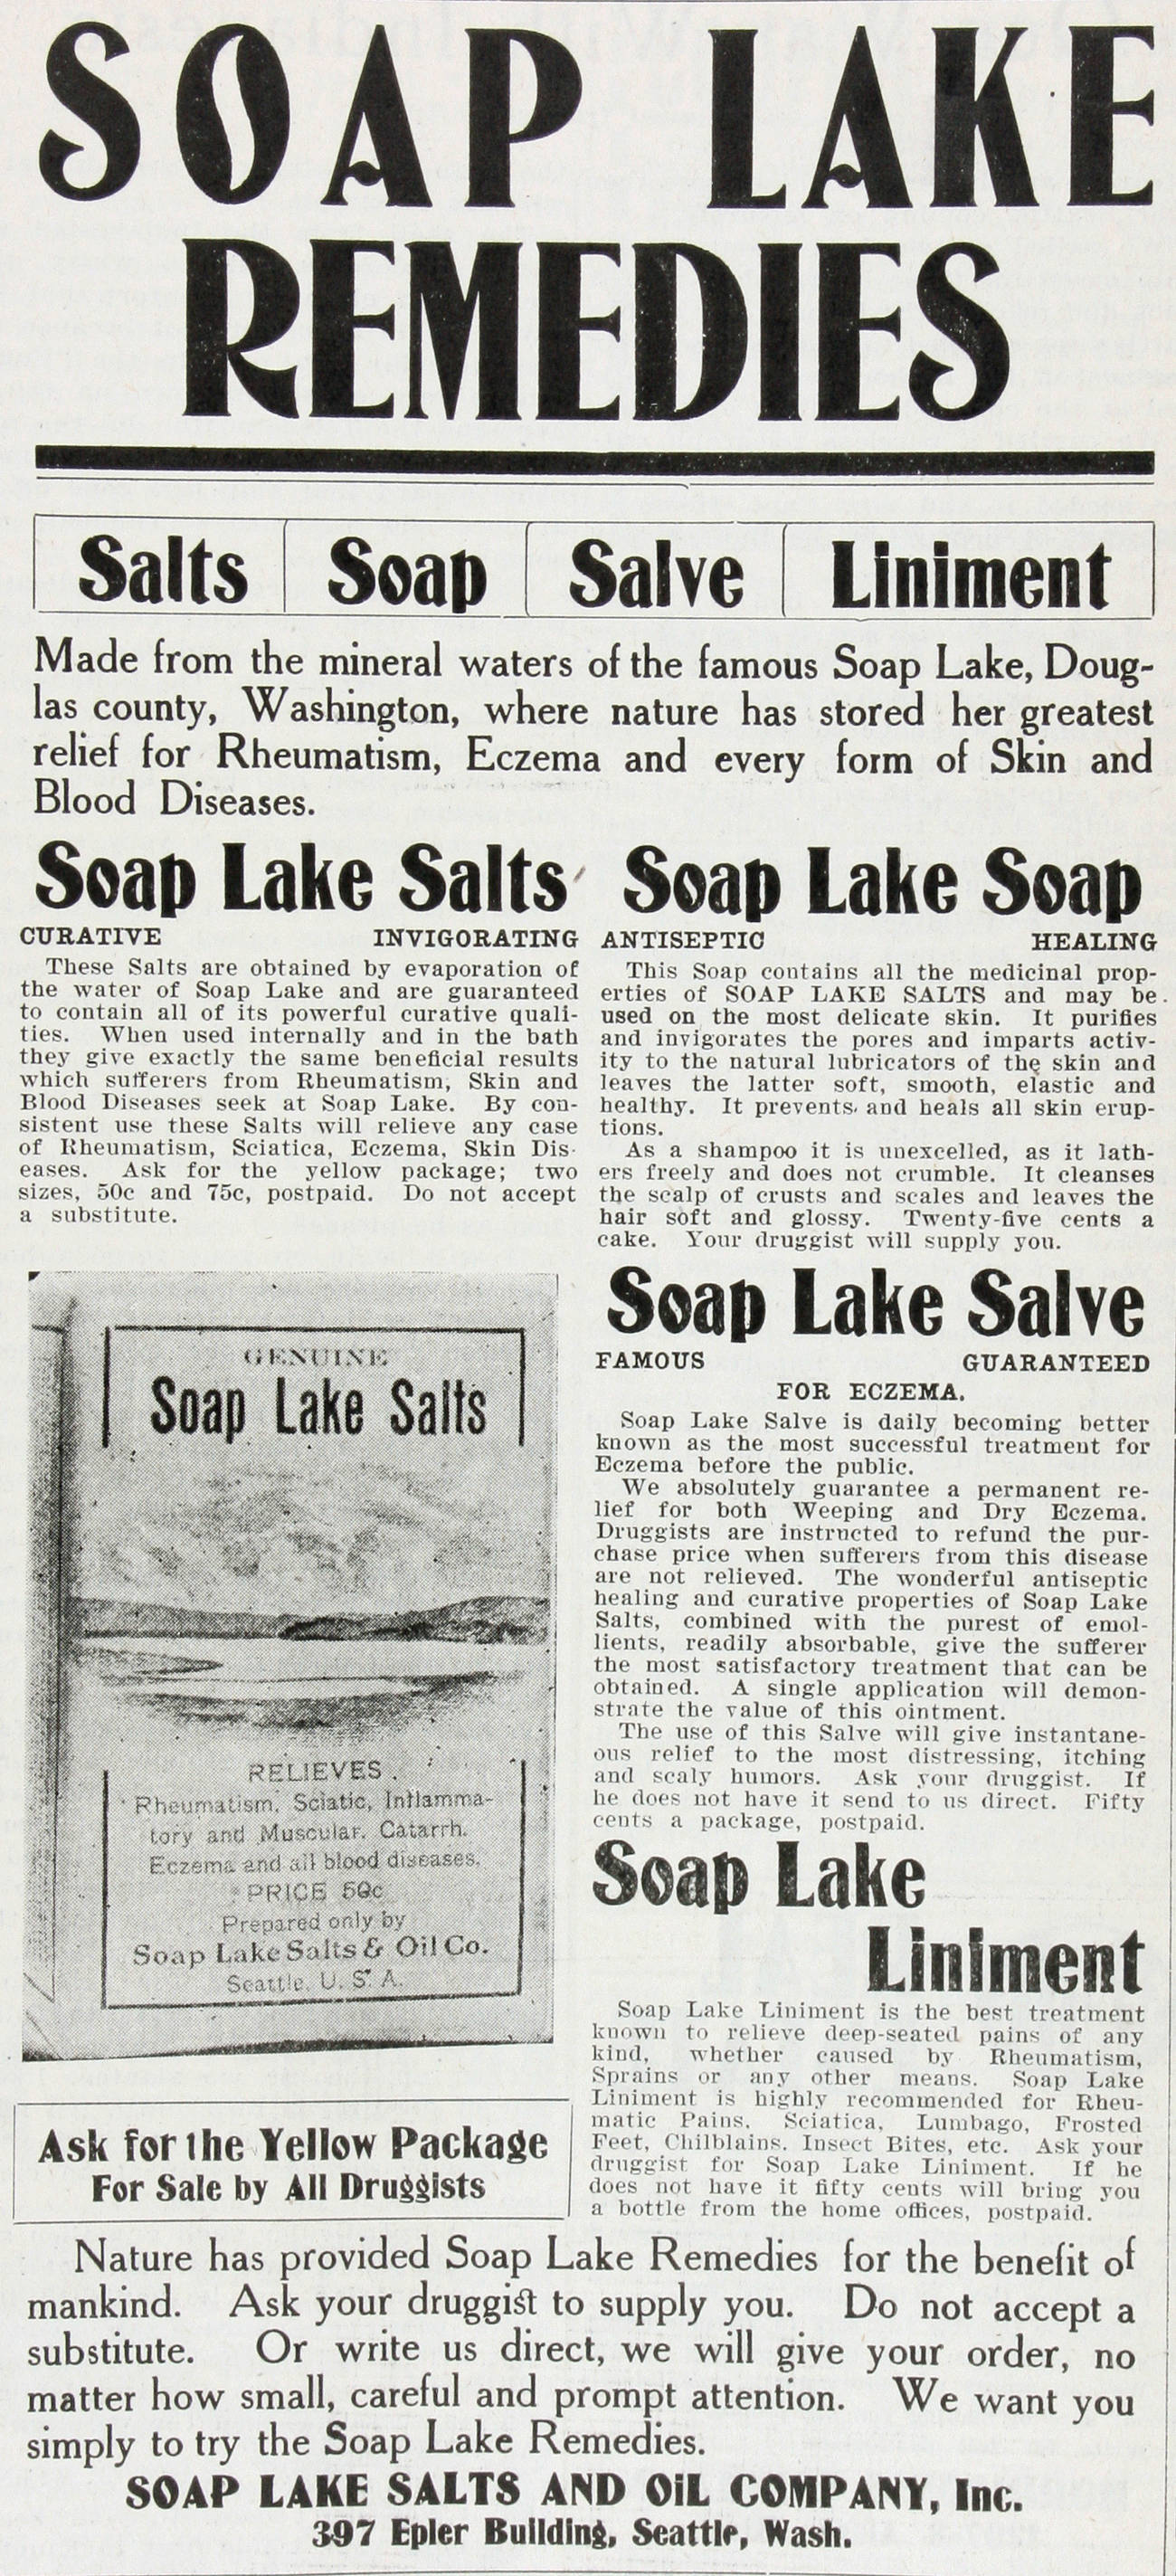 File:Soap Lake Remedies (1908) (ADVERT 342) jpeg - Wikimedia Commons